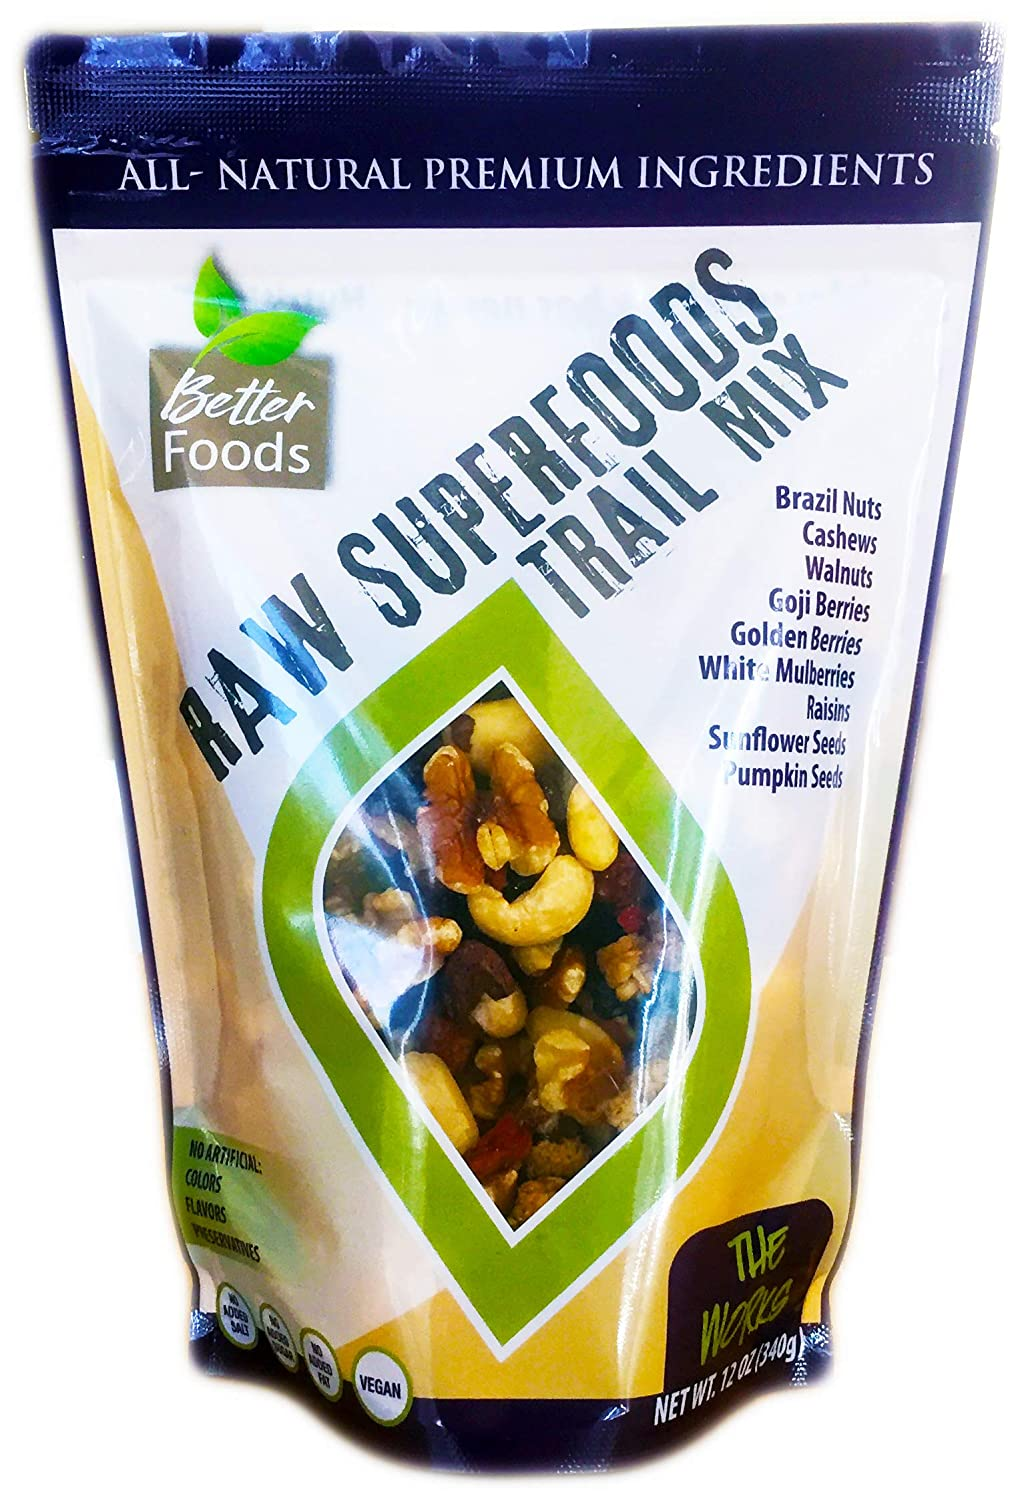 Raw Superfoods Trail Mix: Amazon.com: Grocery & Gourmet Food